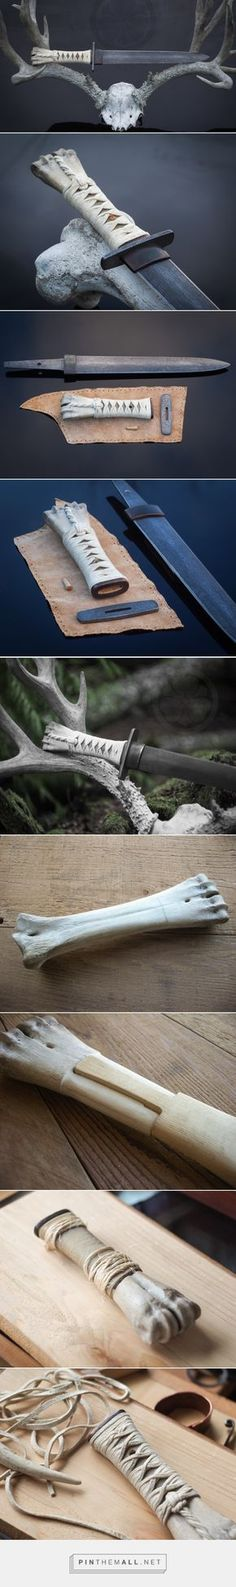 The Bone Dagger - Crossed Heart Forge by earnestine Cool Knives, Knives And Tools, Knives And Swords, Armas Ninja, Blacksmithing Knives, Maila, Swords And Daggers, Knife Handles, Arm Armor